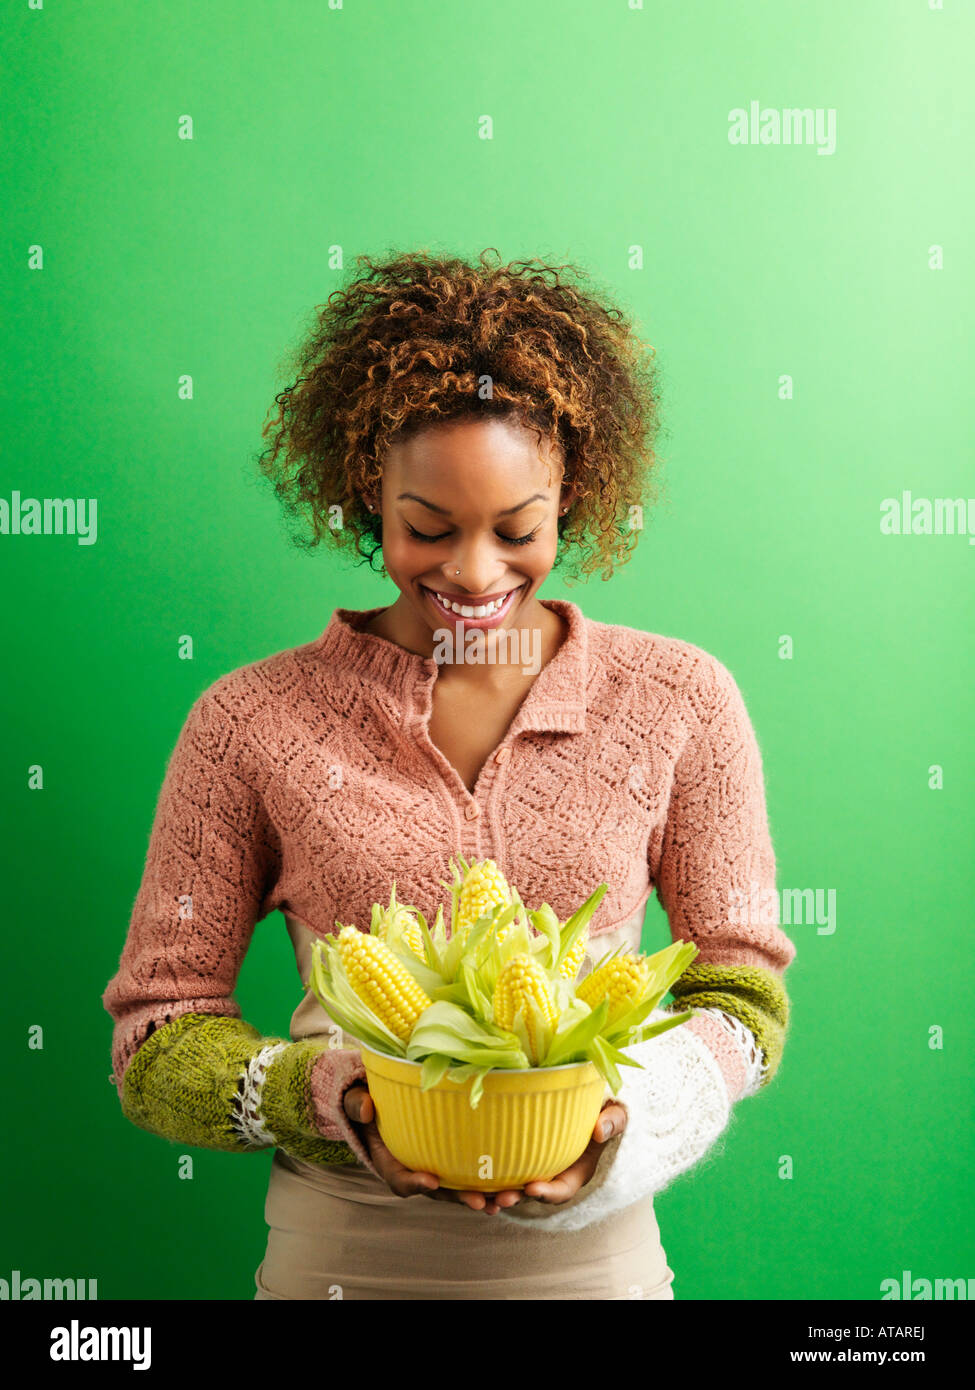 Portrait of pretty young woman standing against green background holding bowl full of ears of corn - Stock Image